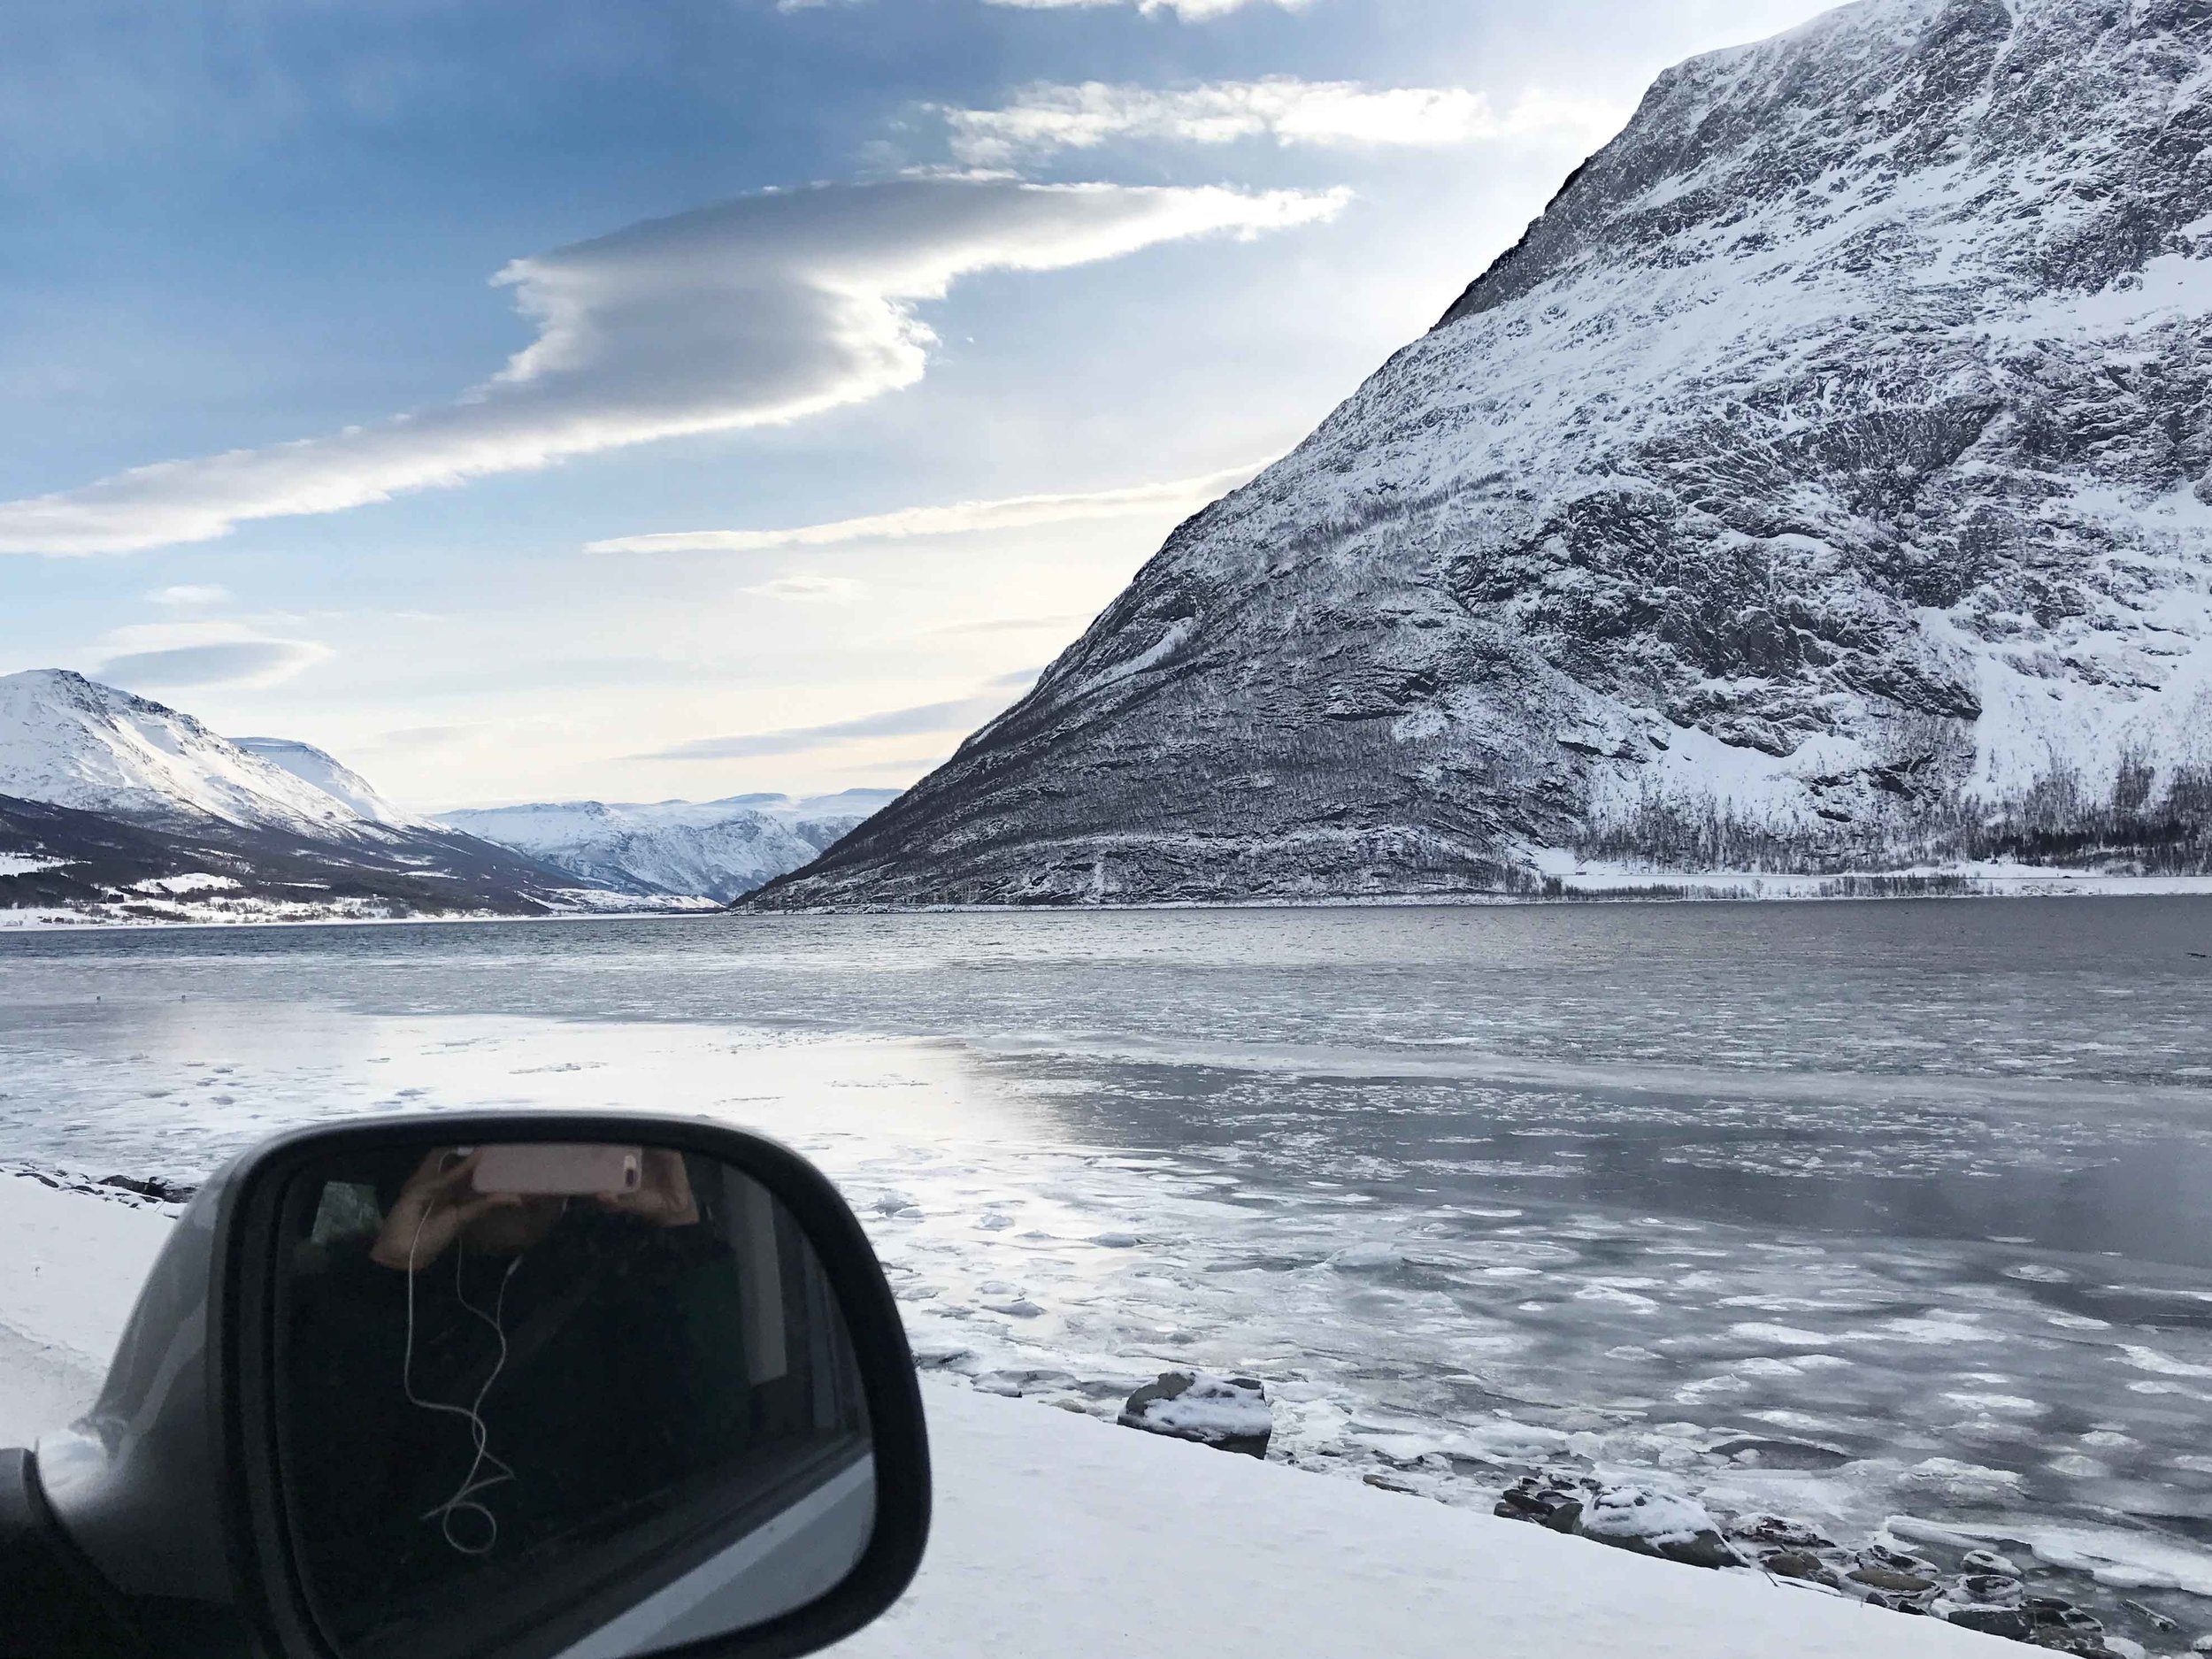 Driving through the fjords in Norway, Arctic Circle. Image©thingstodot.com